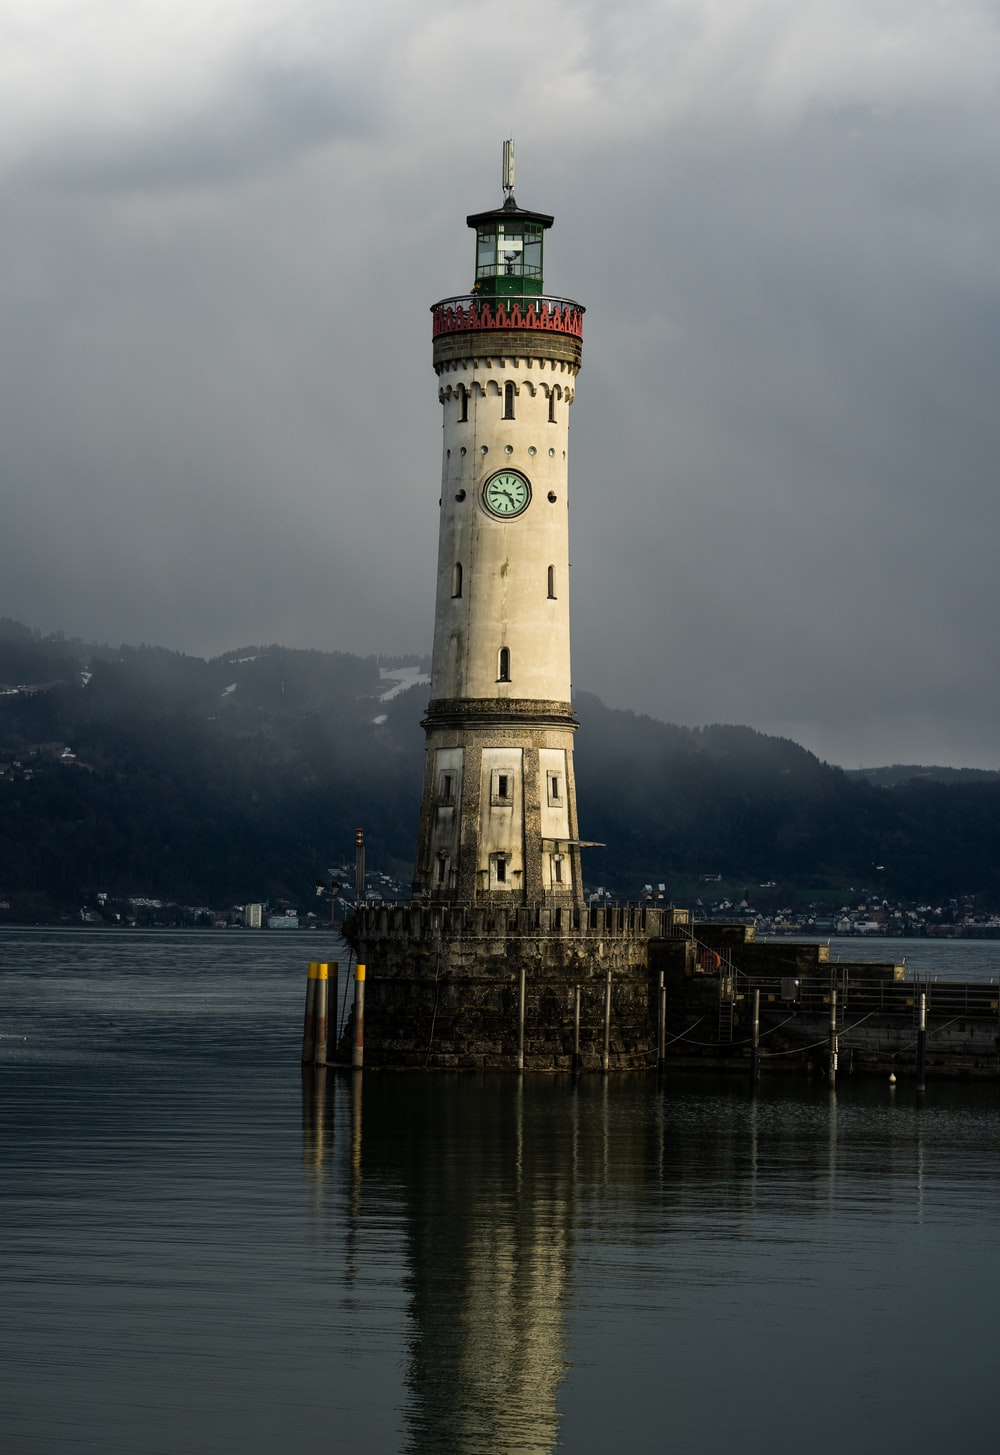 white lighthouse near calm body of water